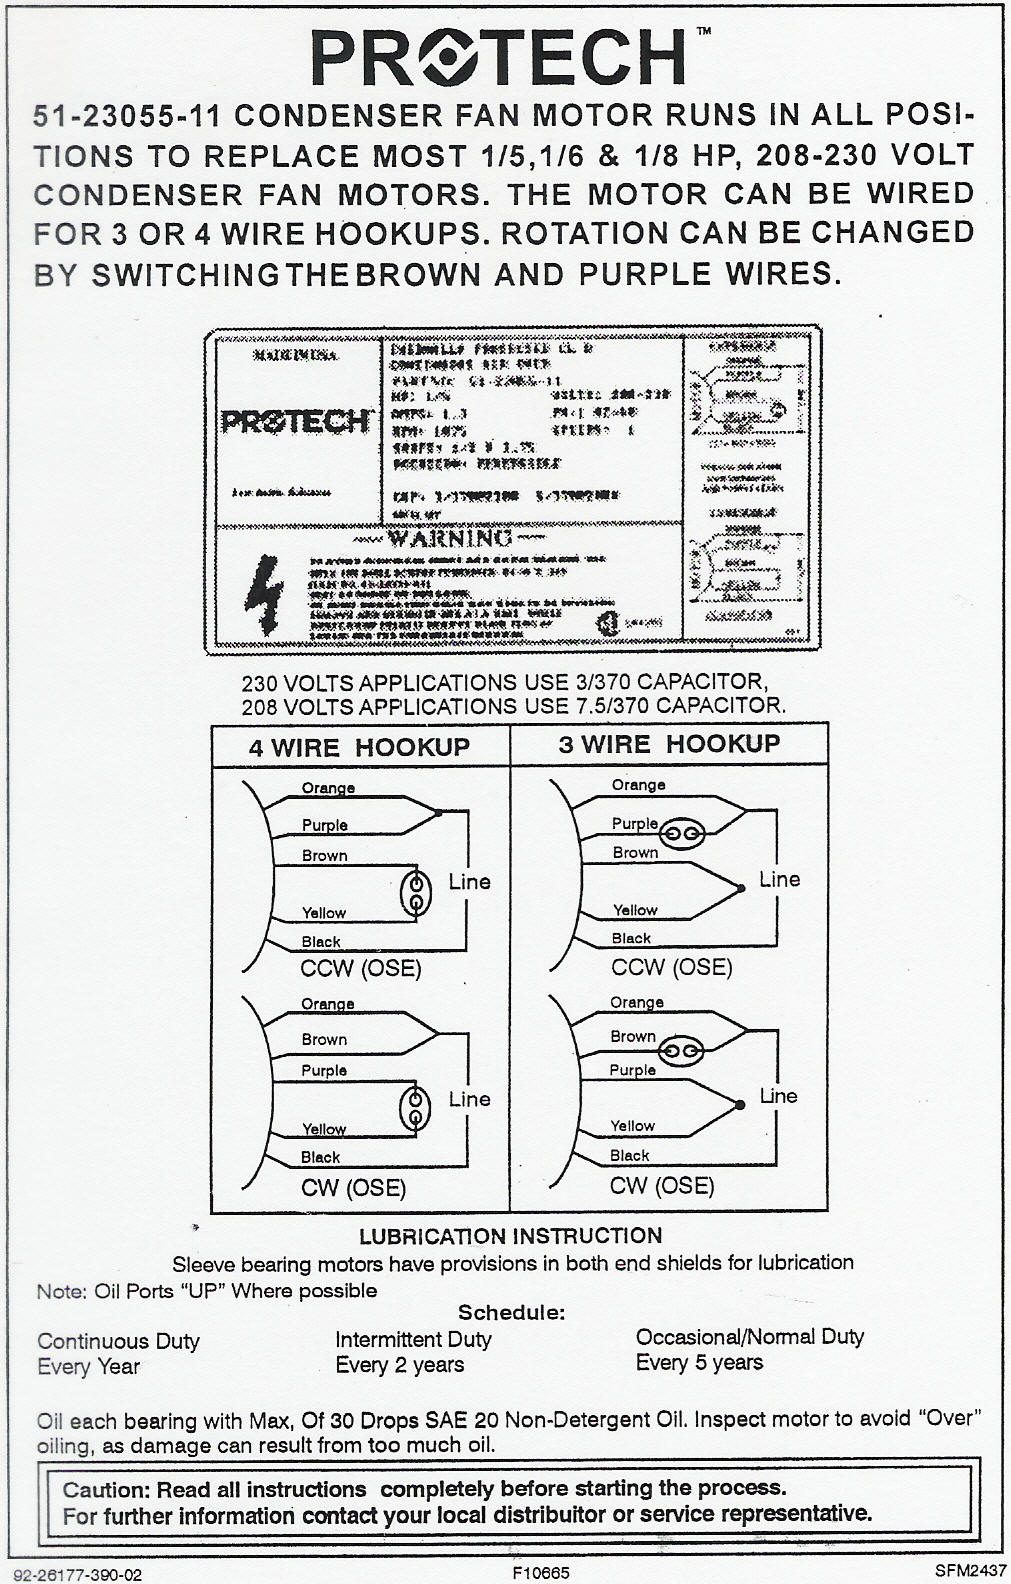 51 23055 11 wiring diagram rheem ruud condenser fan motor 51 23055 11 wiring diagram Basic Electrical Wiring Diagrams at readyjetset.co